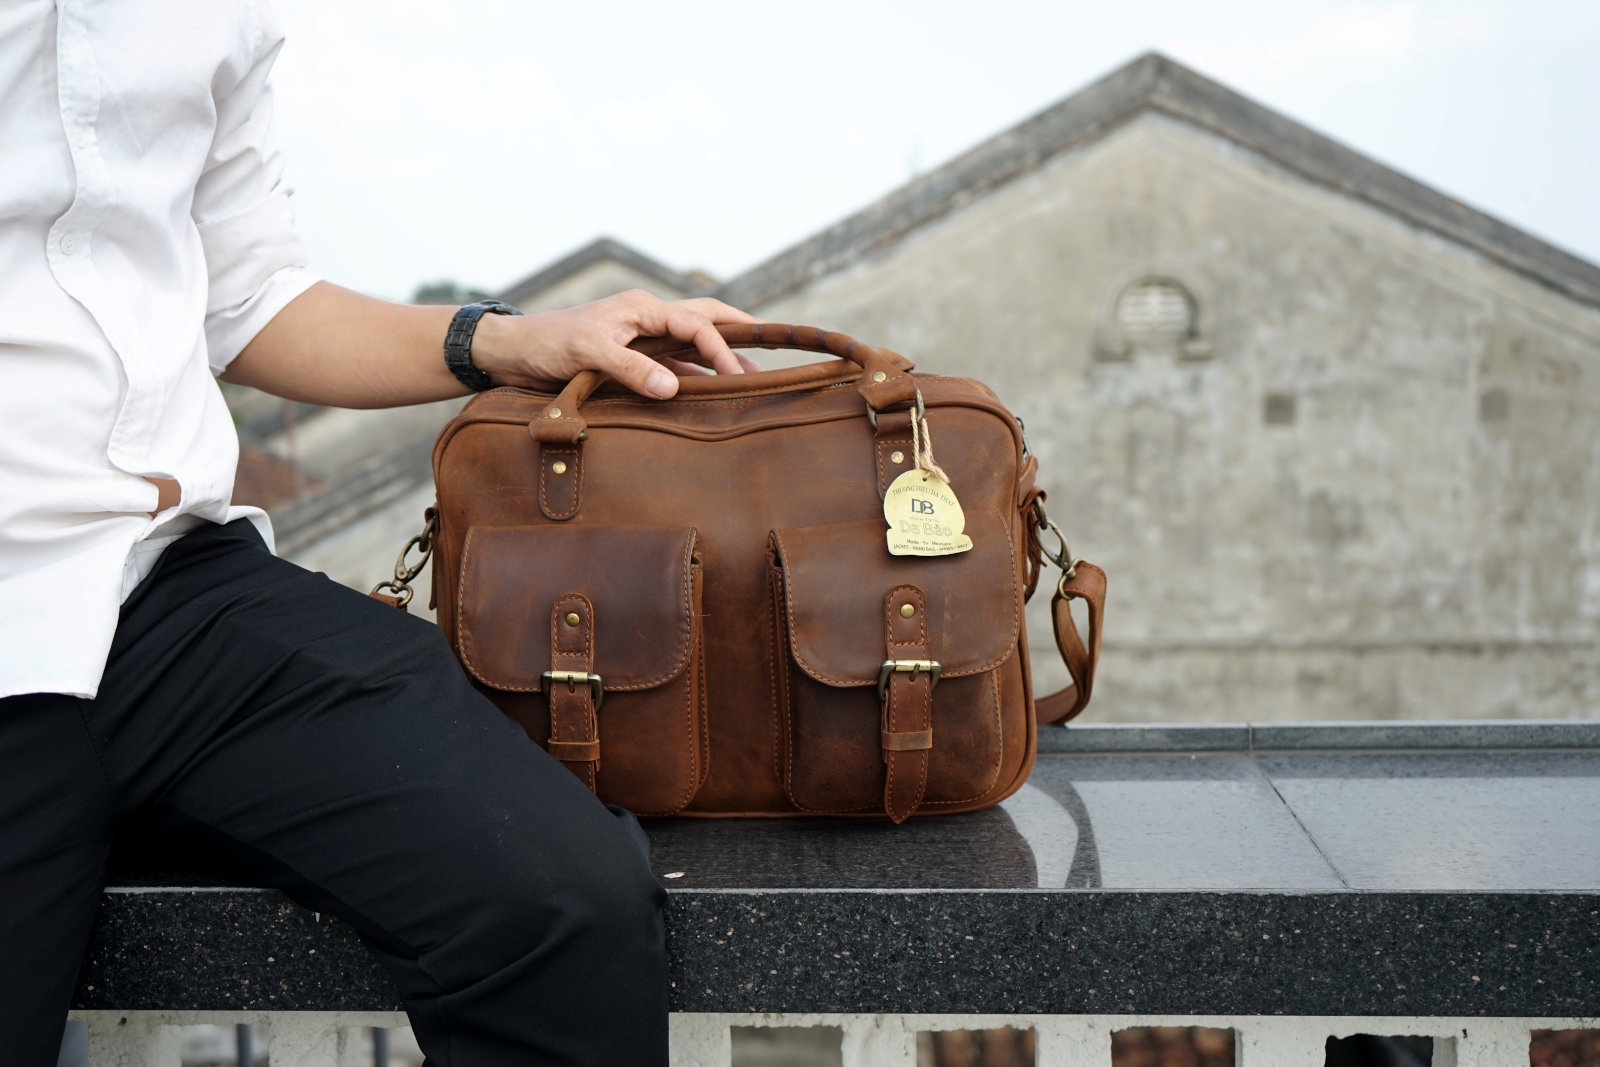 Hoi An Real Leather - Da Bao Real Leather: Leather Bags - Big Leather Briefcase with 2 compartments and outer pockets. Stylish vintage looking buffalo leather